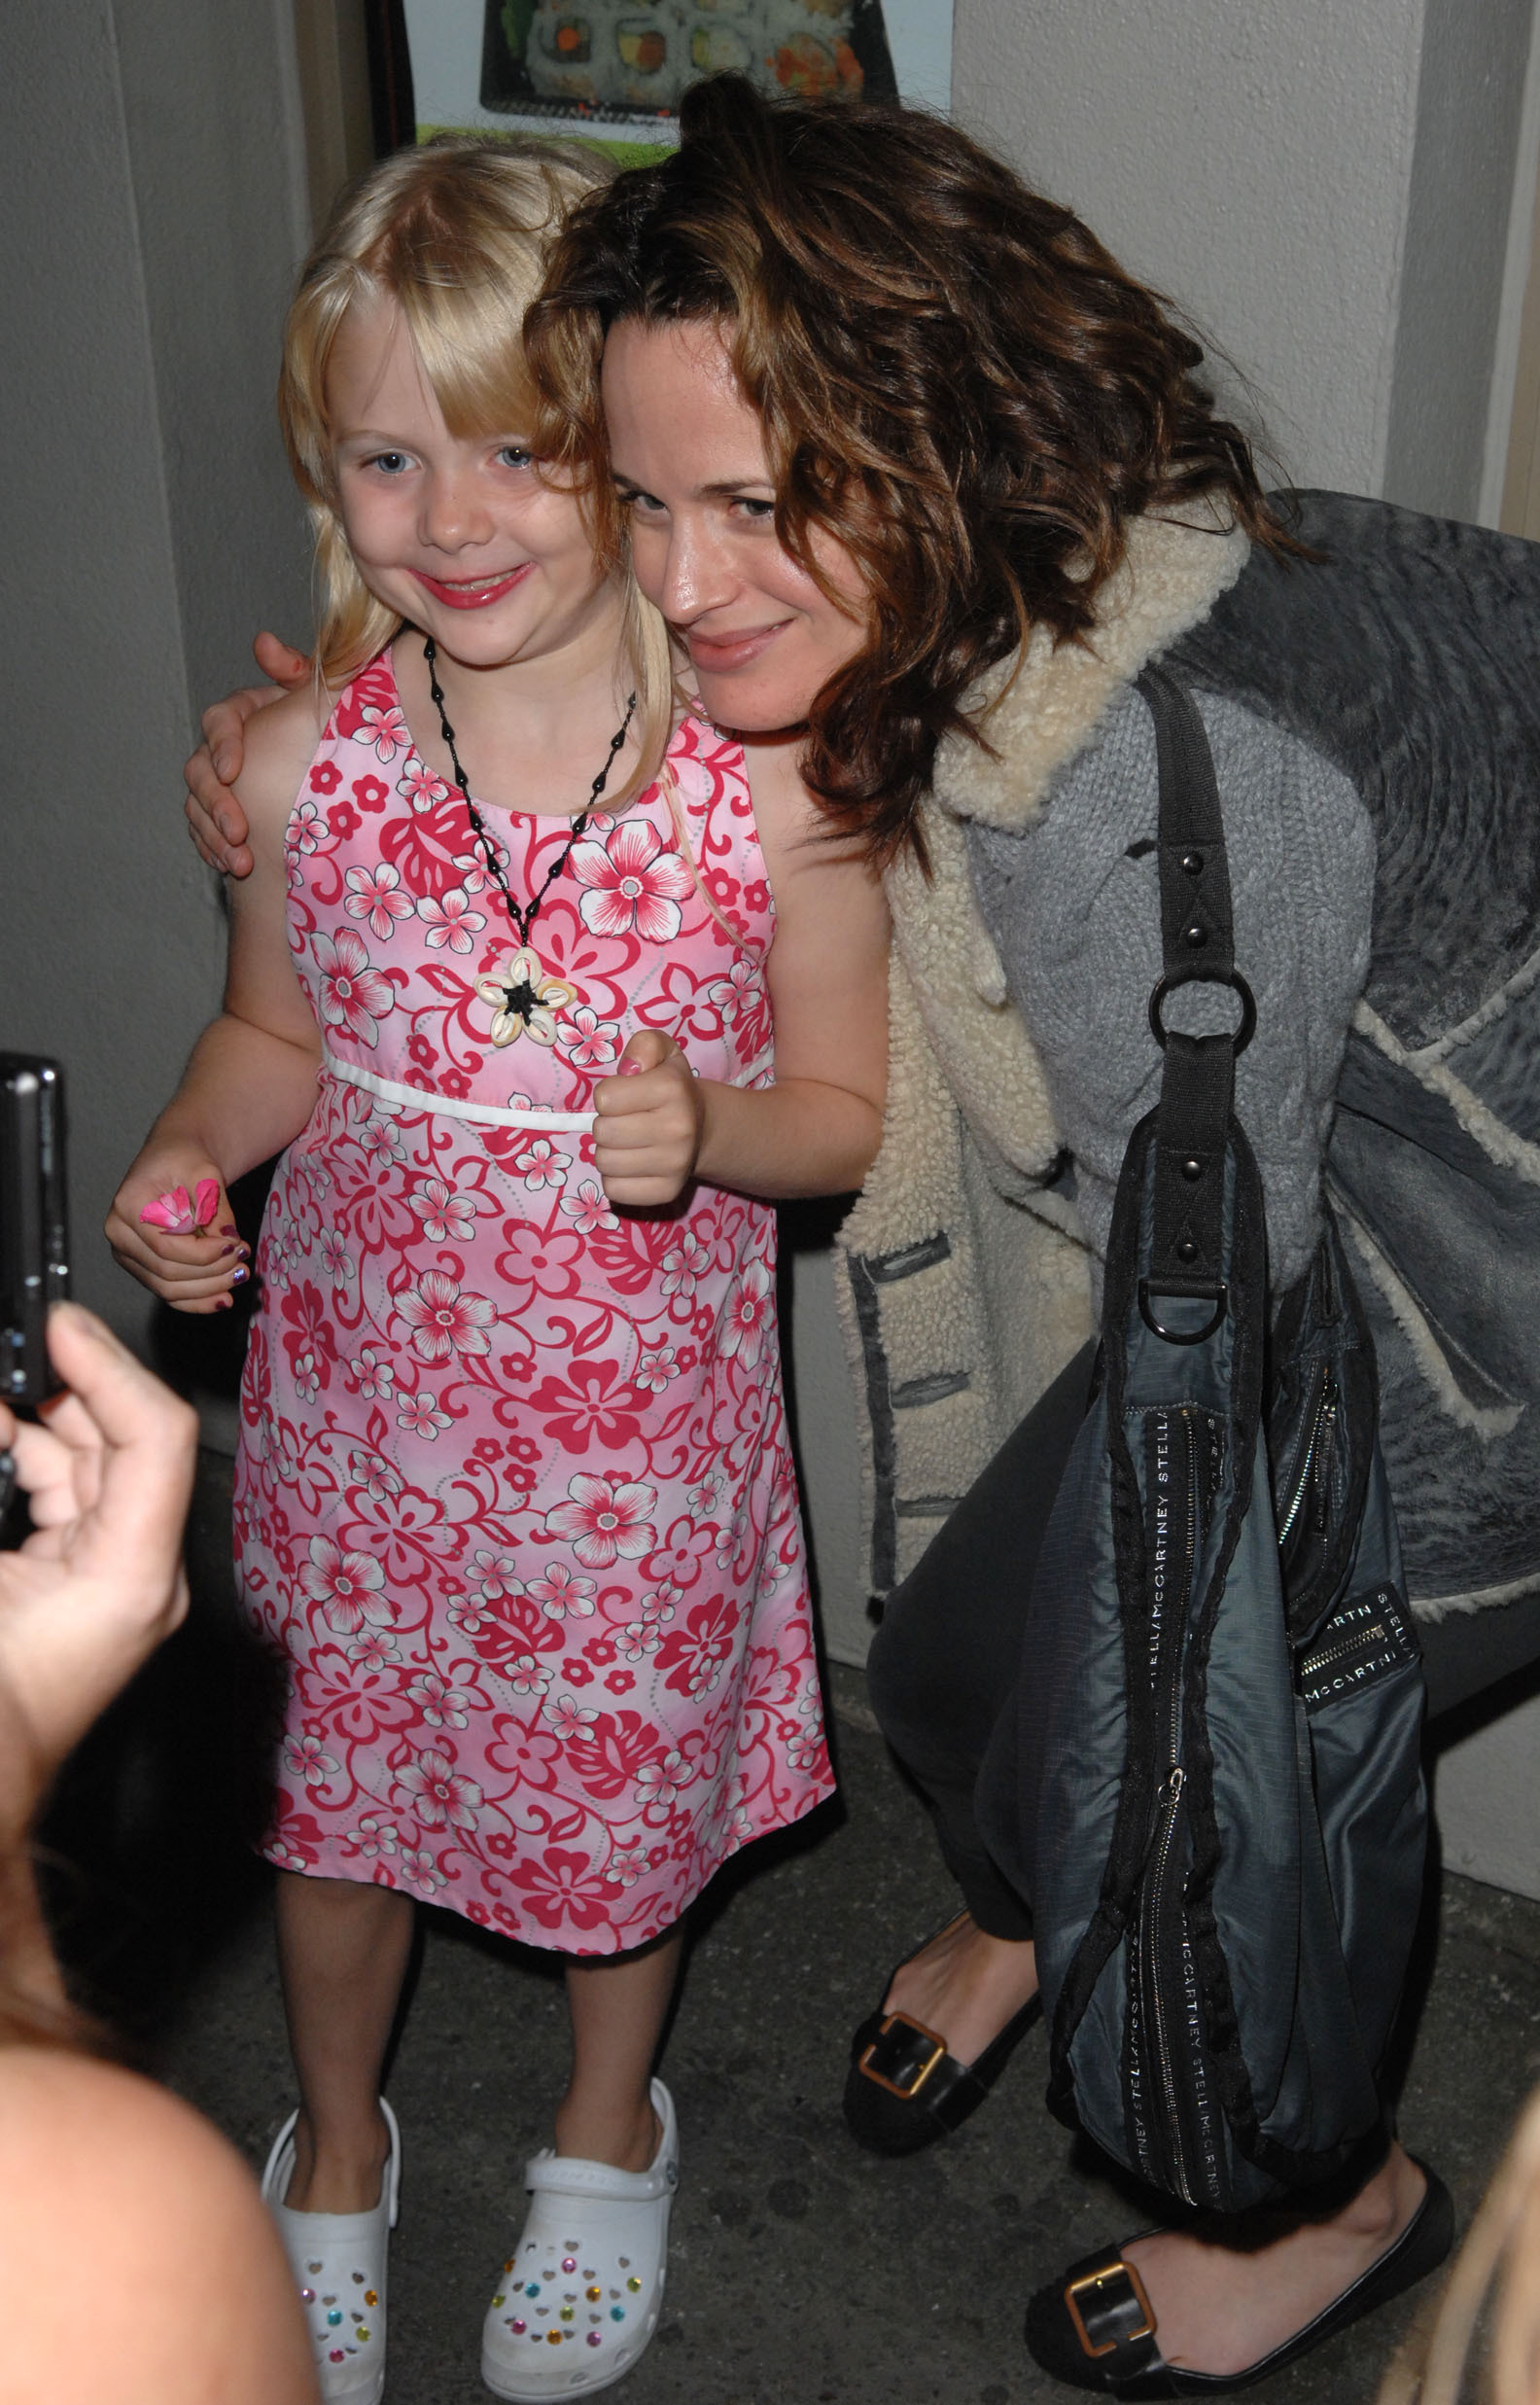 New/Old candids of Elizabeth going out kwa night with Nikki Reed